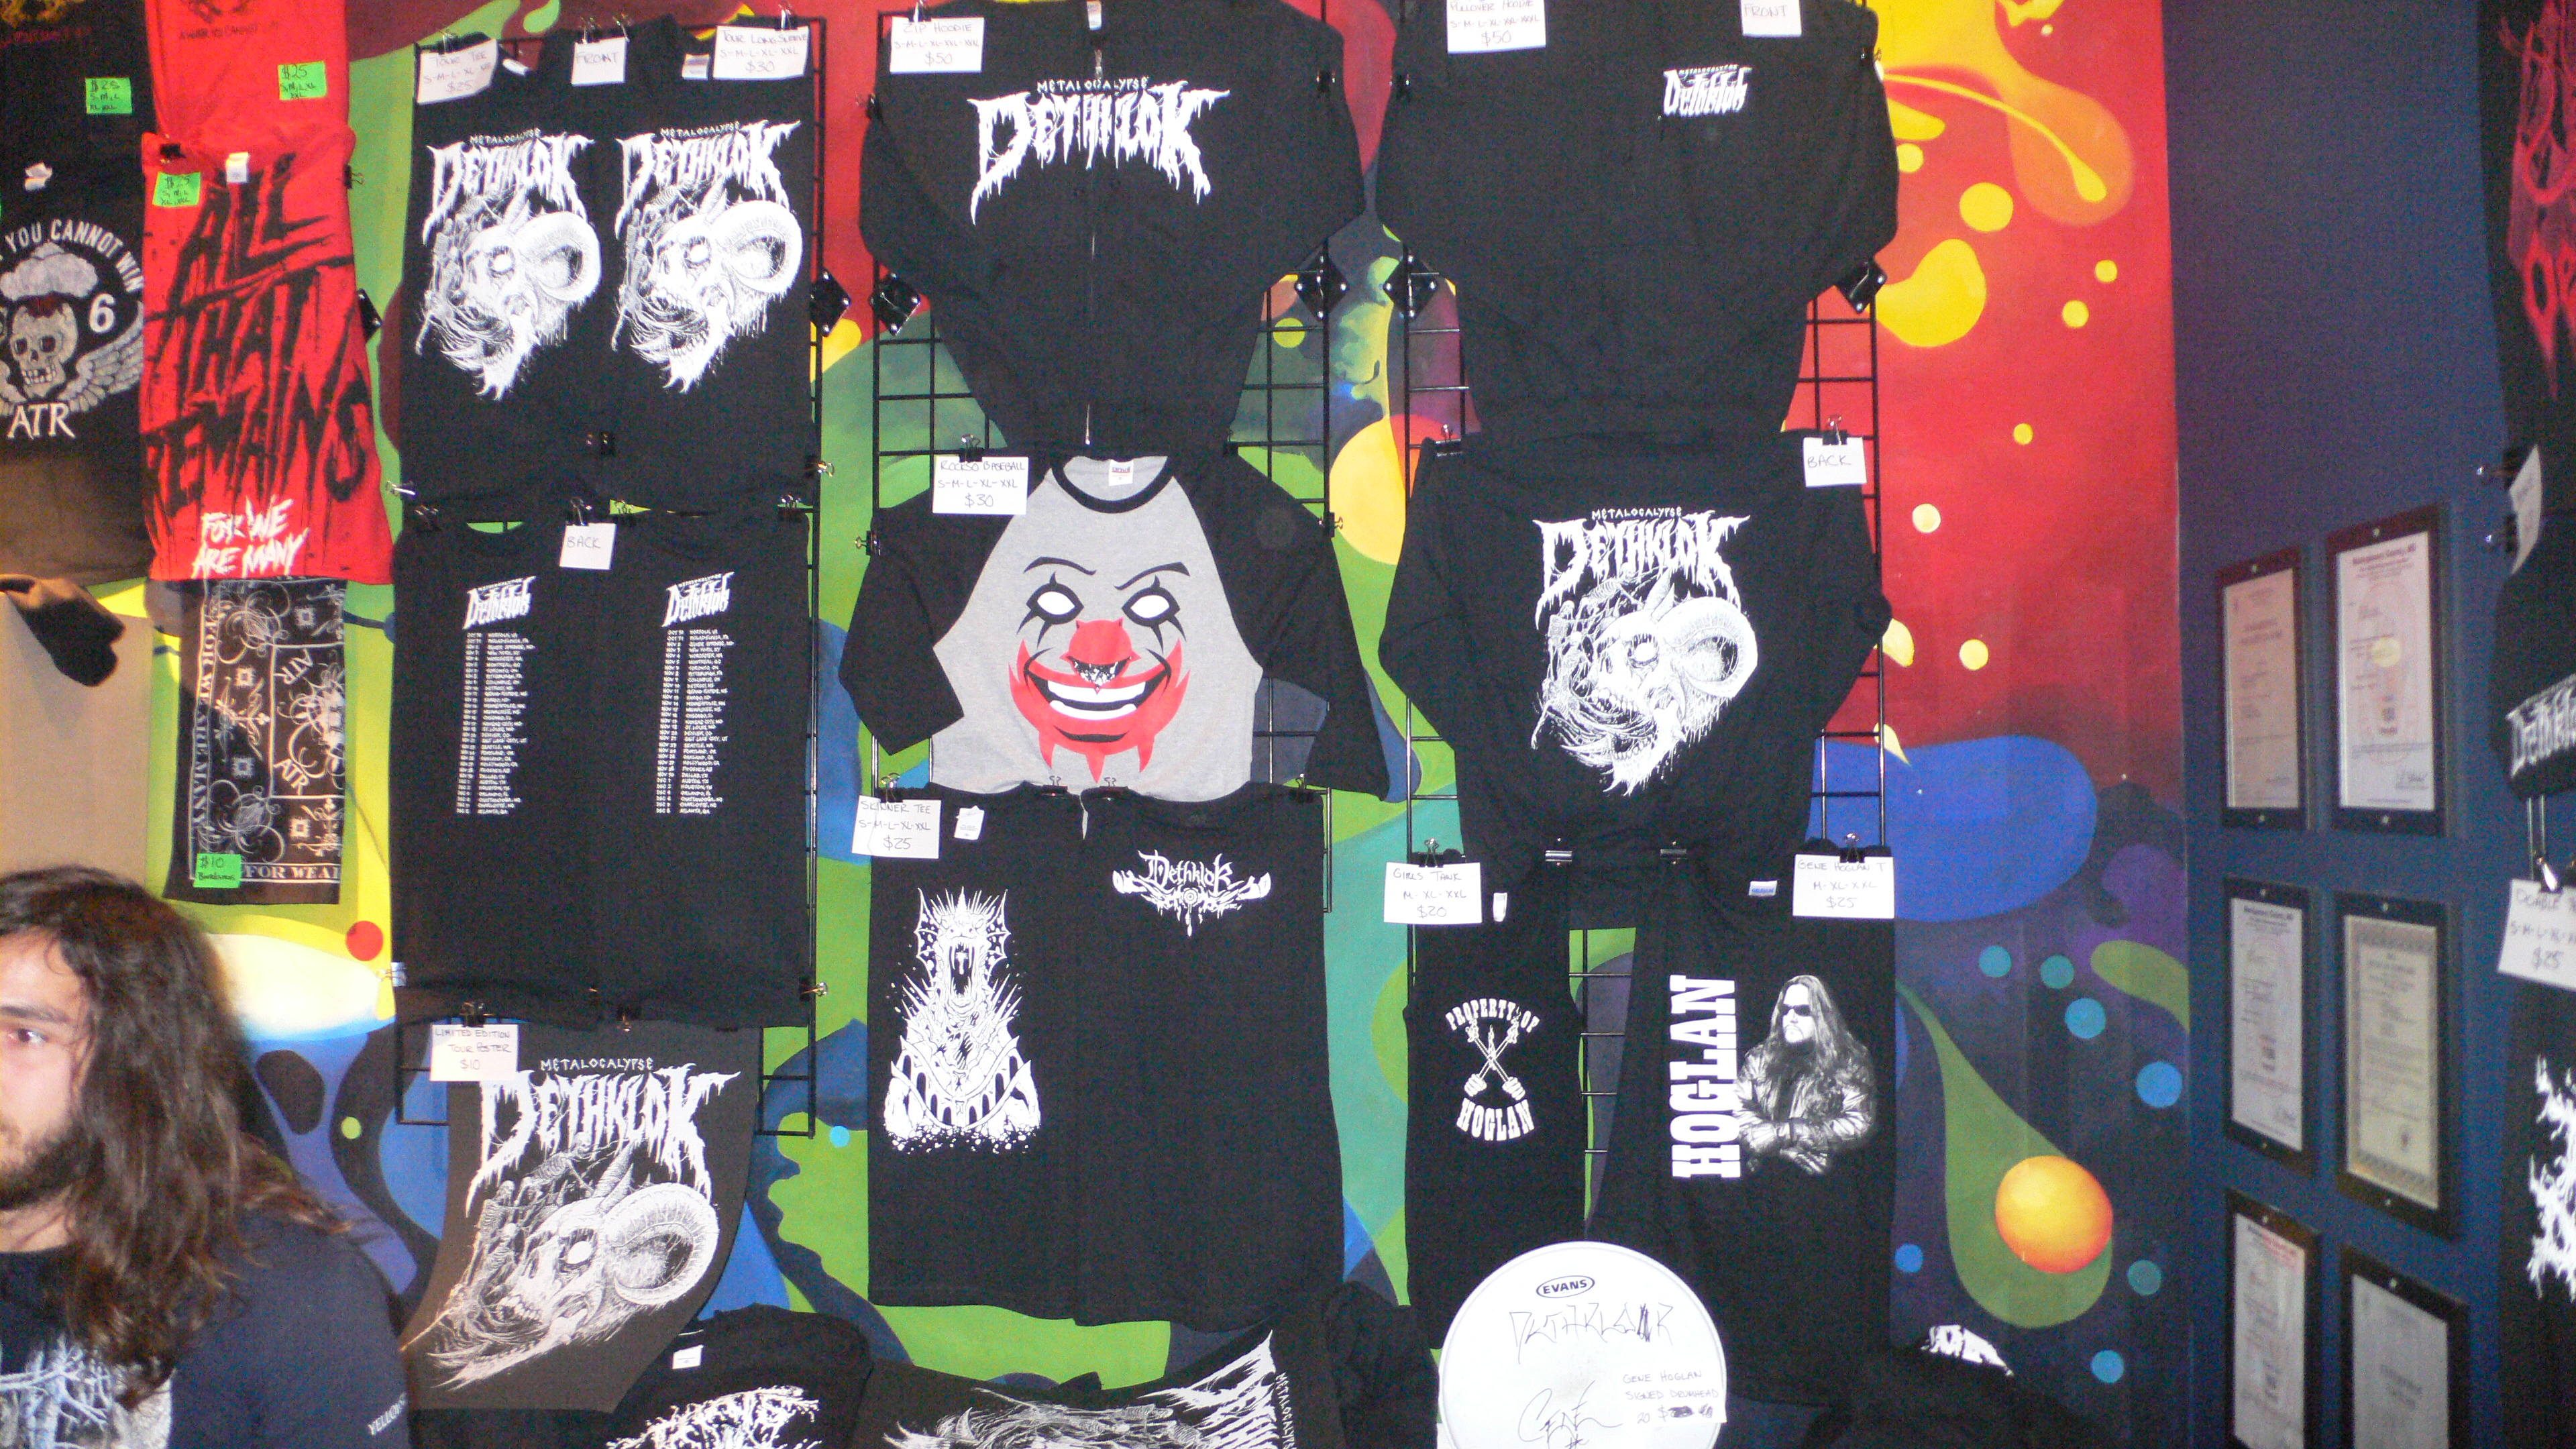 Metalocalypse T-Shirts